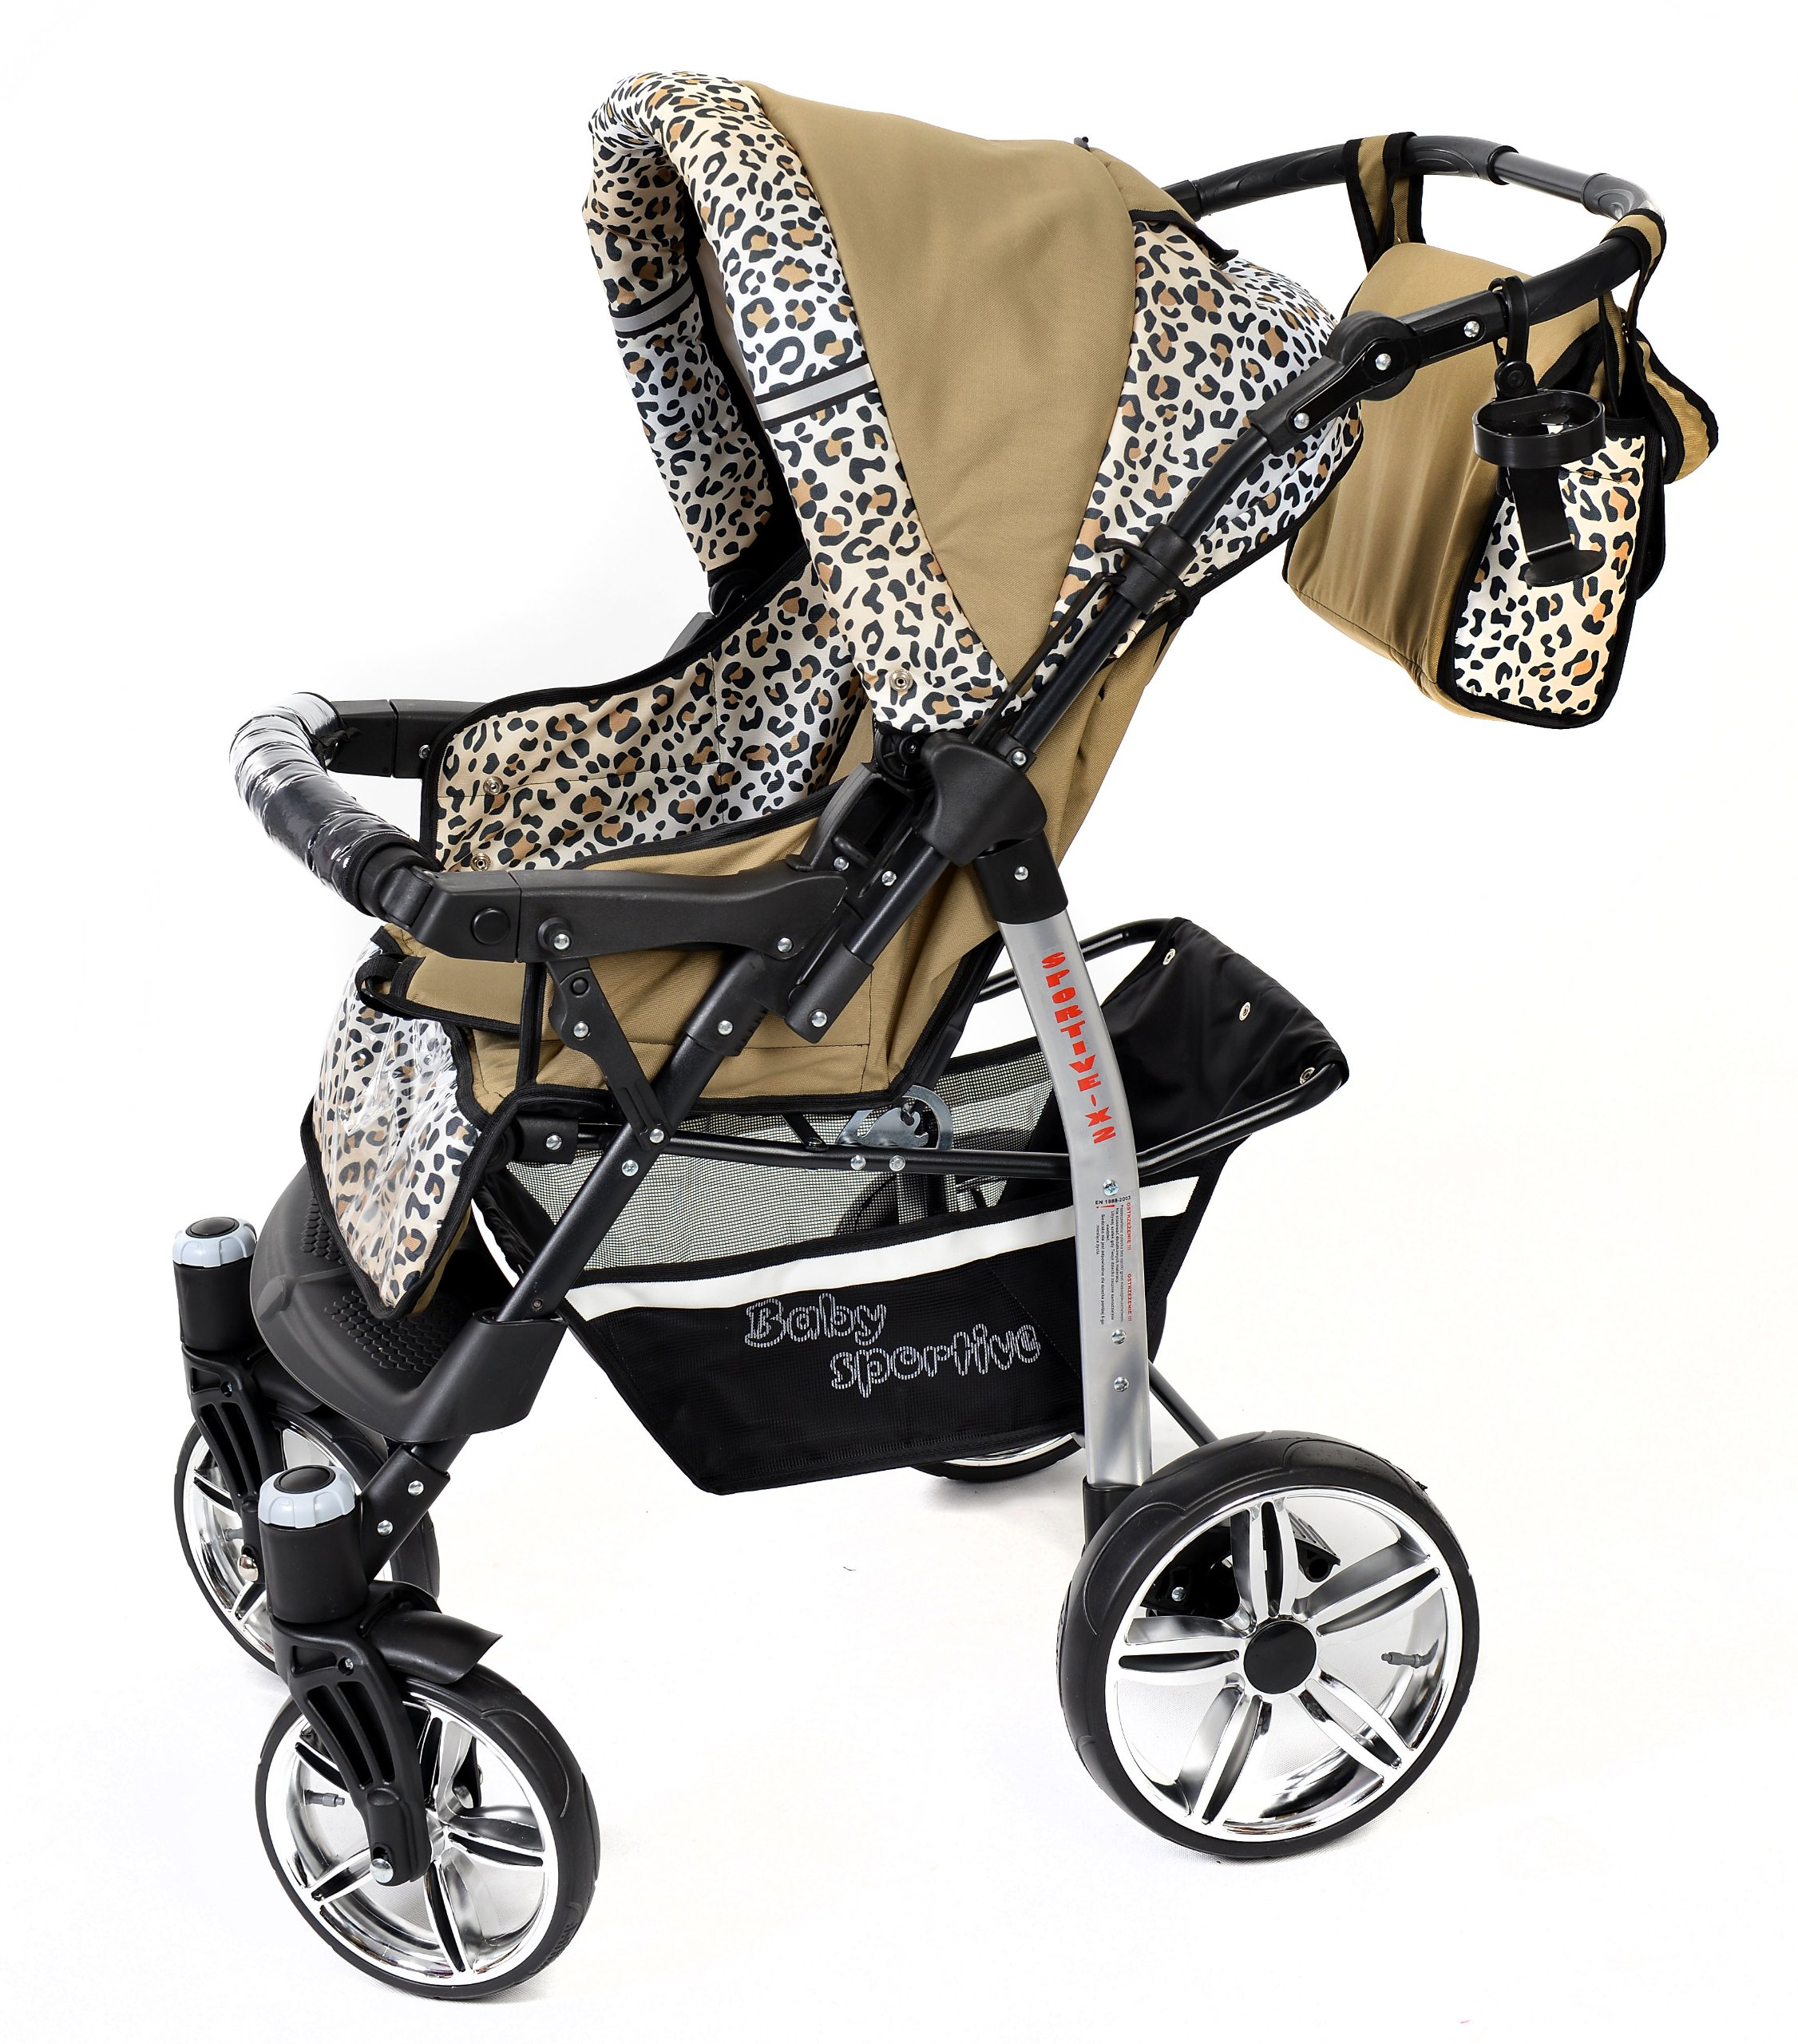 Sportive X2, 3-in-1 Travel System incl. Baby Pram with Swivel Wheels, Car Seat, Pushchair & Accessories (3-in-1 Travel System, Beige & Leopard) Baby Sportive 3 in 1 Travel System All in One Set - Pram, Car Carrier Seat and Sport Buggy + Accessories: carrier bag, rain protection, mosquito net, changing mat, removable bottle holder and removable tray for your child's bits and pieces Suitable from birth, Easy Quick Folding System; Large storage basket; Turnable handle bar that allows to face or rear the drive direction; Quick release rear wheels for easy cleaning after muddy walks Front lockable 360o swivel wheels for manoeuvrability , Small sized when folded, fits into many small car trunks, Carry-cot with a removable hood, Reflective elements for better visibility 5